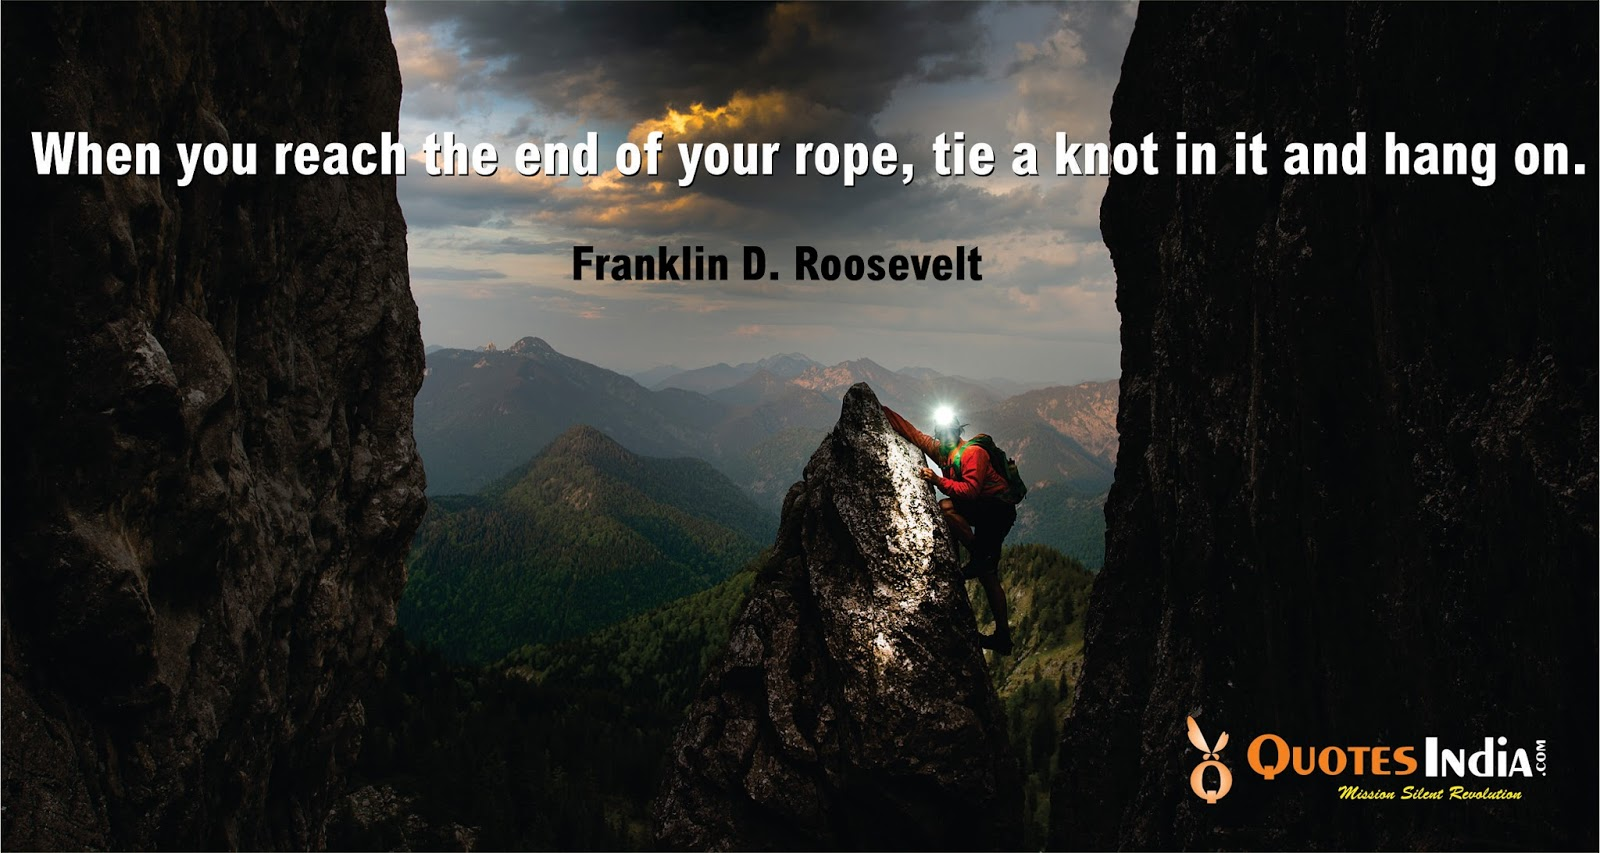 Franklin D Roosevelt Quotes When You Reach The End Of Your Rope. Franklin Droosevelt